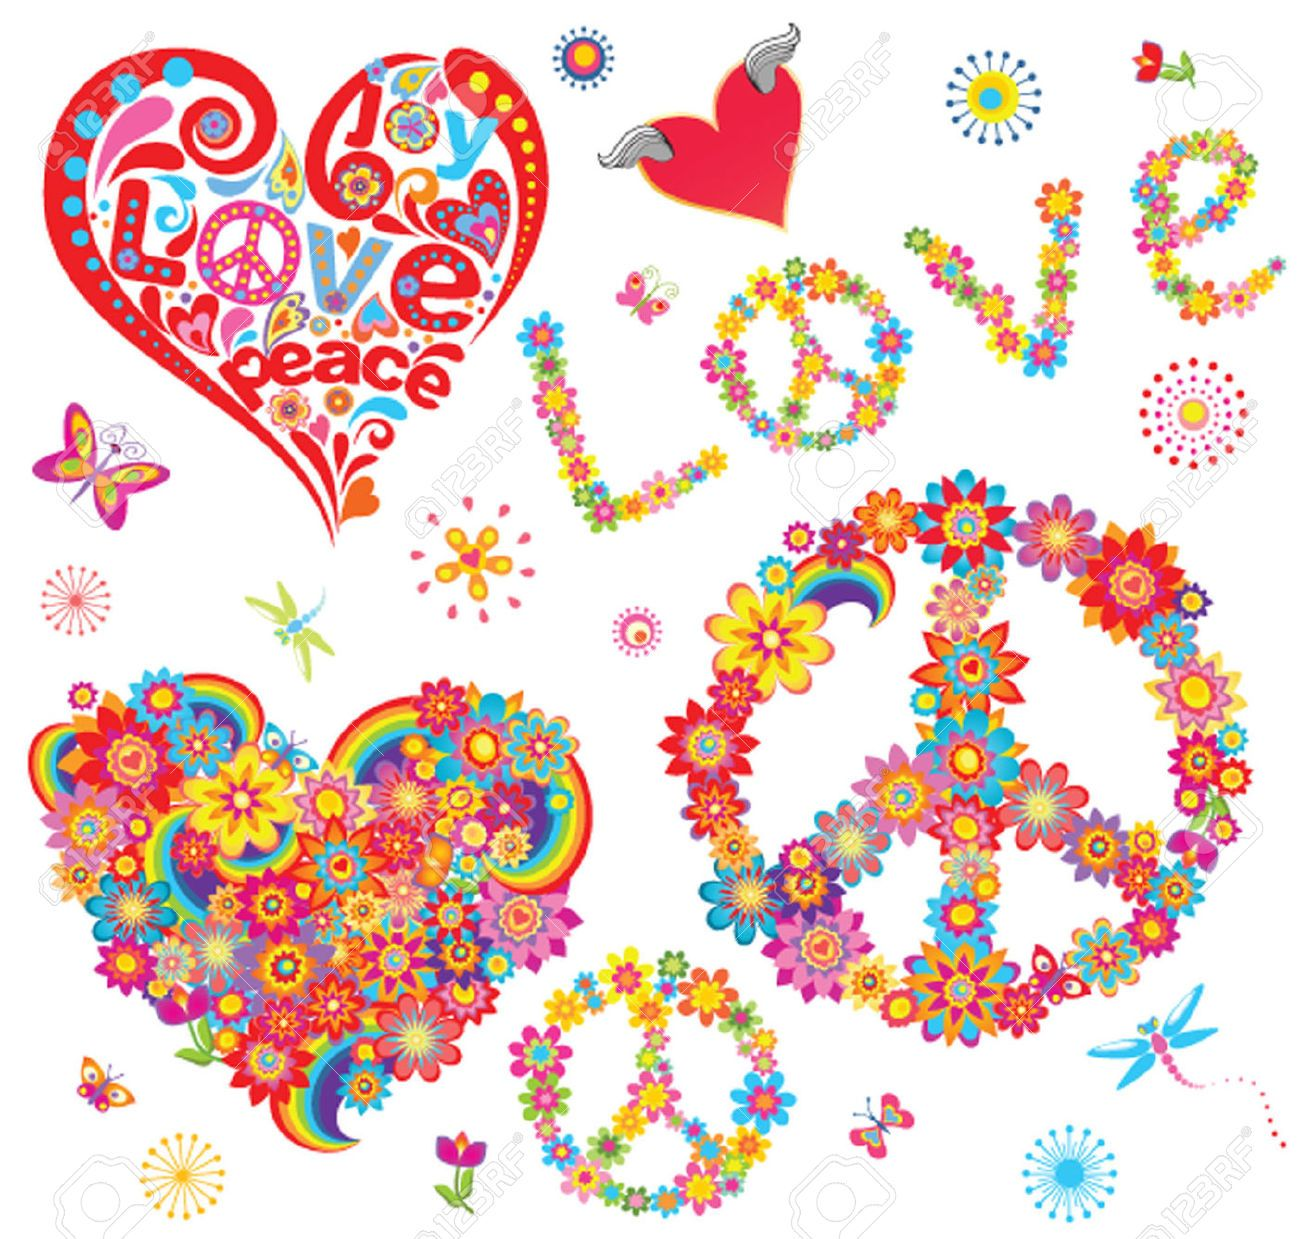 26077680 set of peace flower symbol and floral hearts stock vector 26077680 set of peace flower symbol and floral biocorpaavc